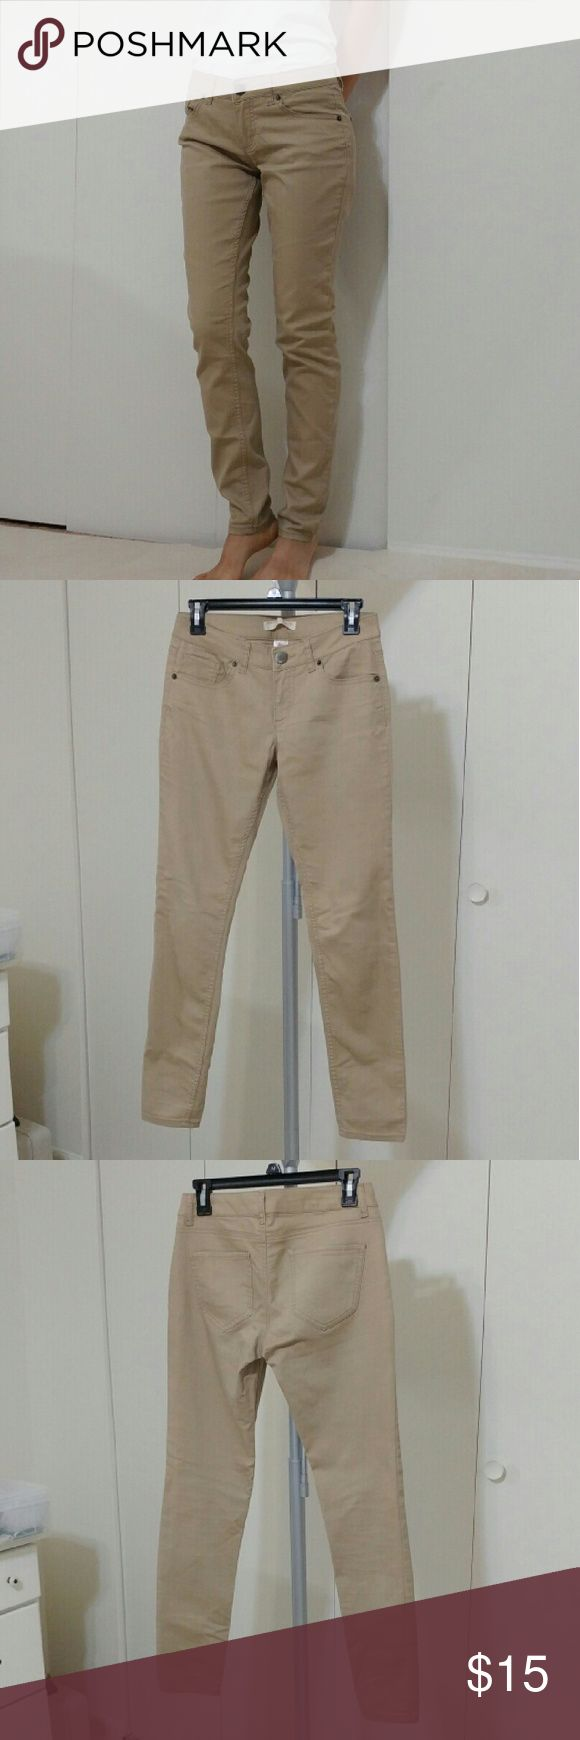 Beige/Tan Skinny Jeans Worn for a week for work. SUPER COMFY!! Stretchy material. Great for work. Gently used! The size is 7 youth but it fit great on me (my size is 0) No Boundaries Pants Skinny